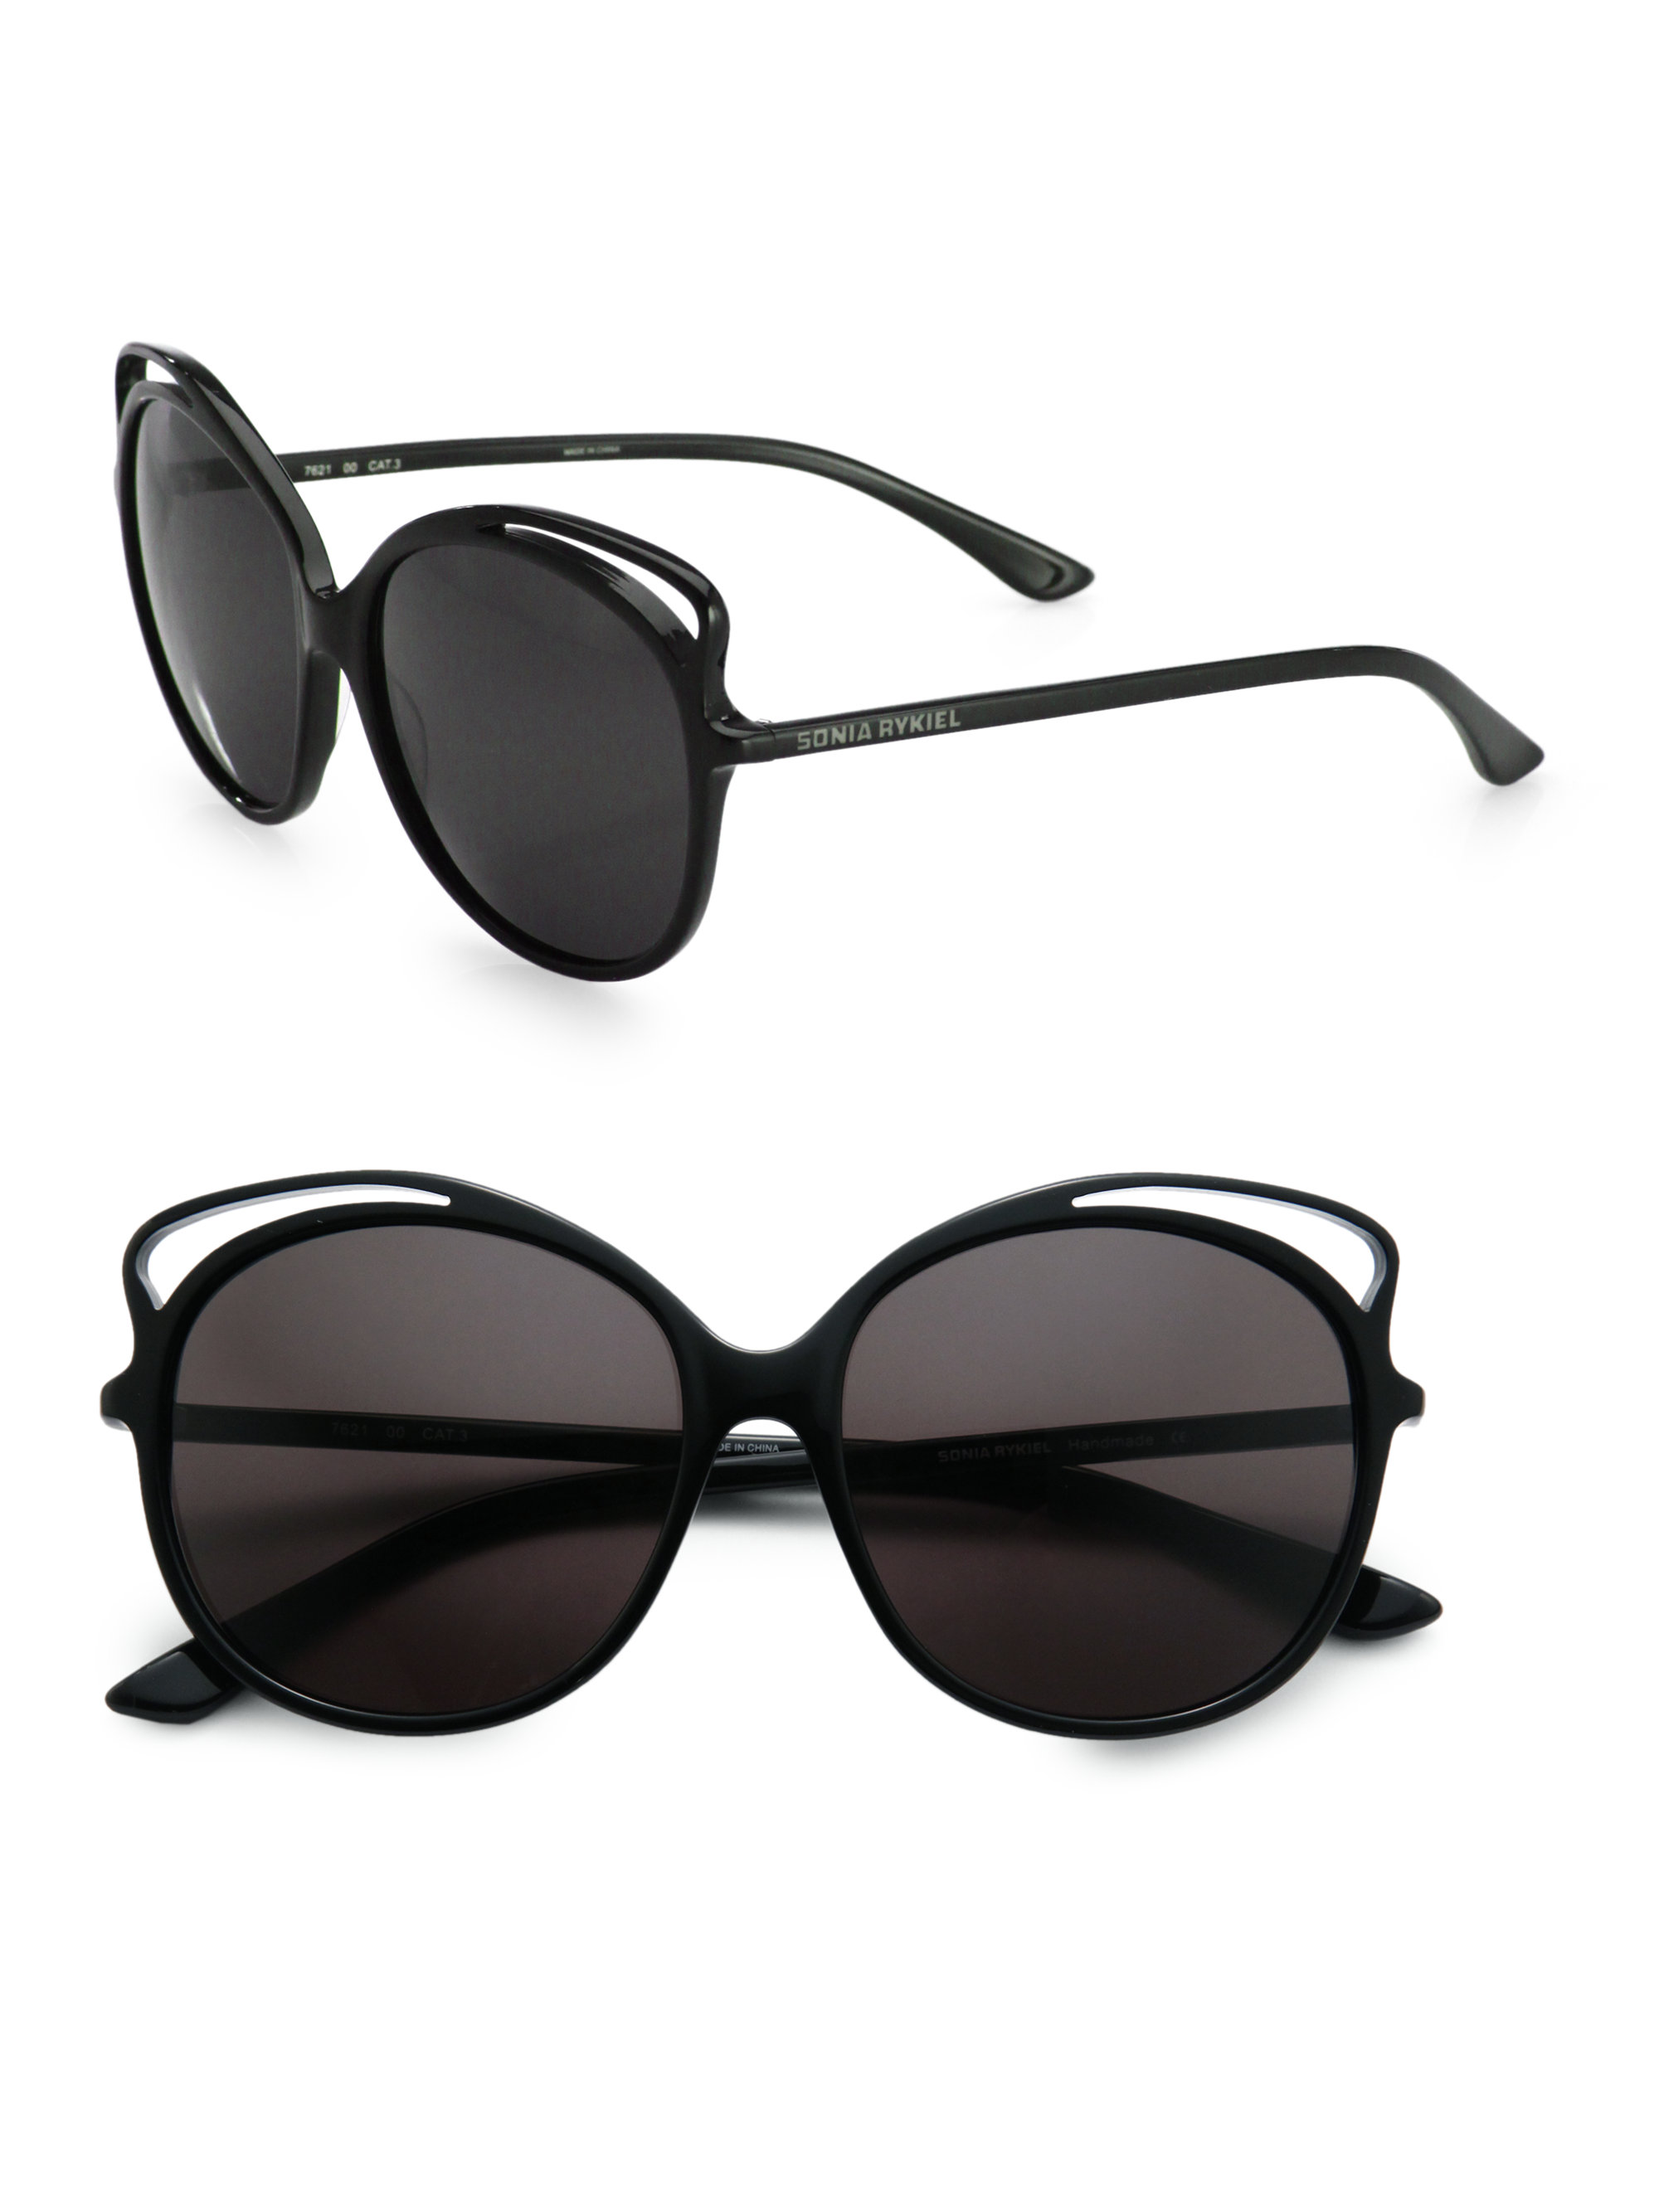 Sunglasses Cutout  sonia rykiel oversized catseye cutout acetate sunglasses in black